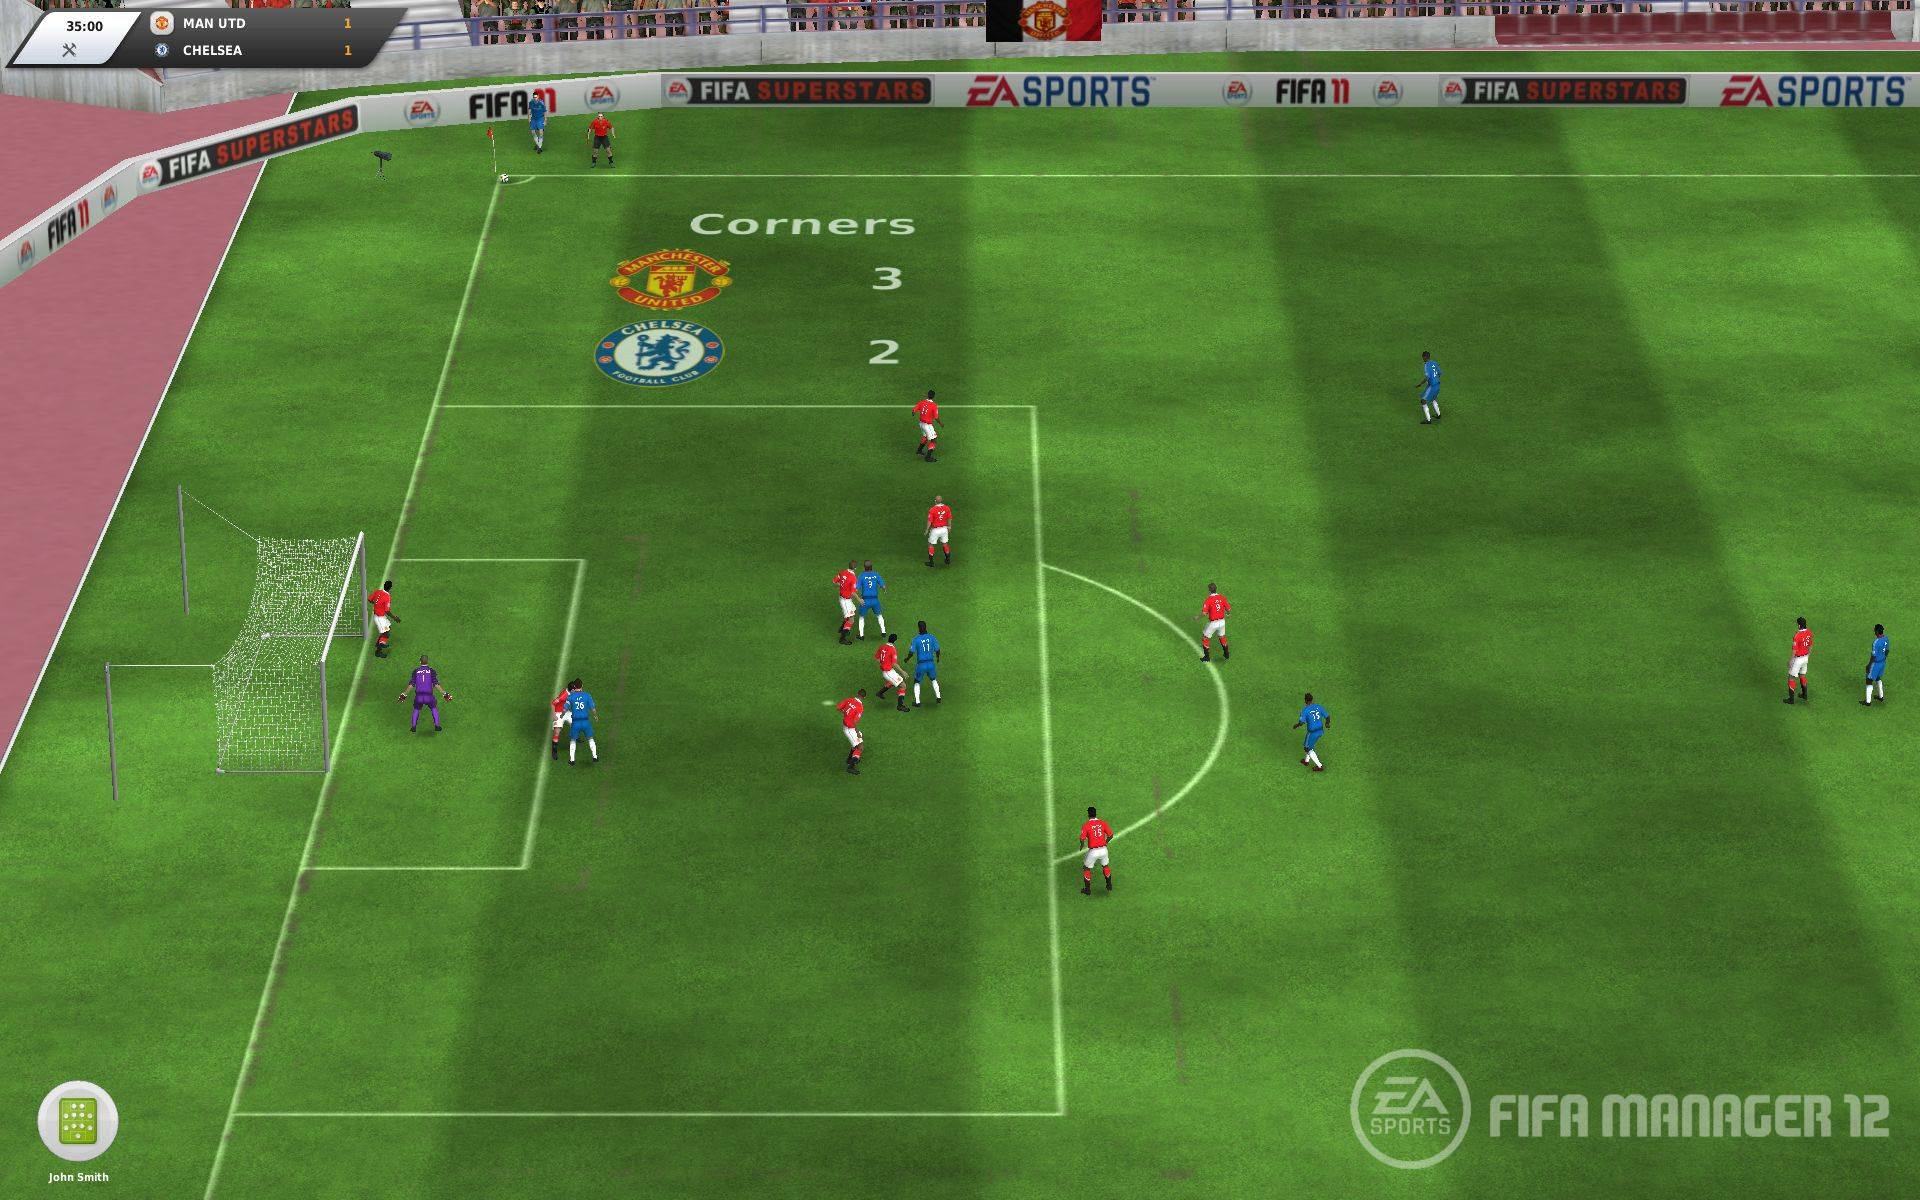 fifa manager 14 crack download free